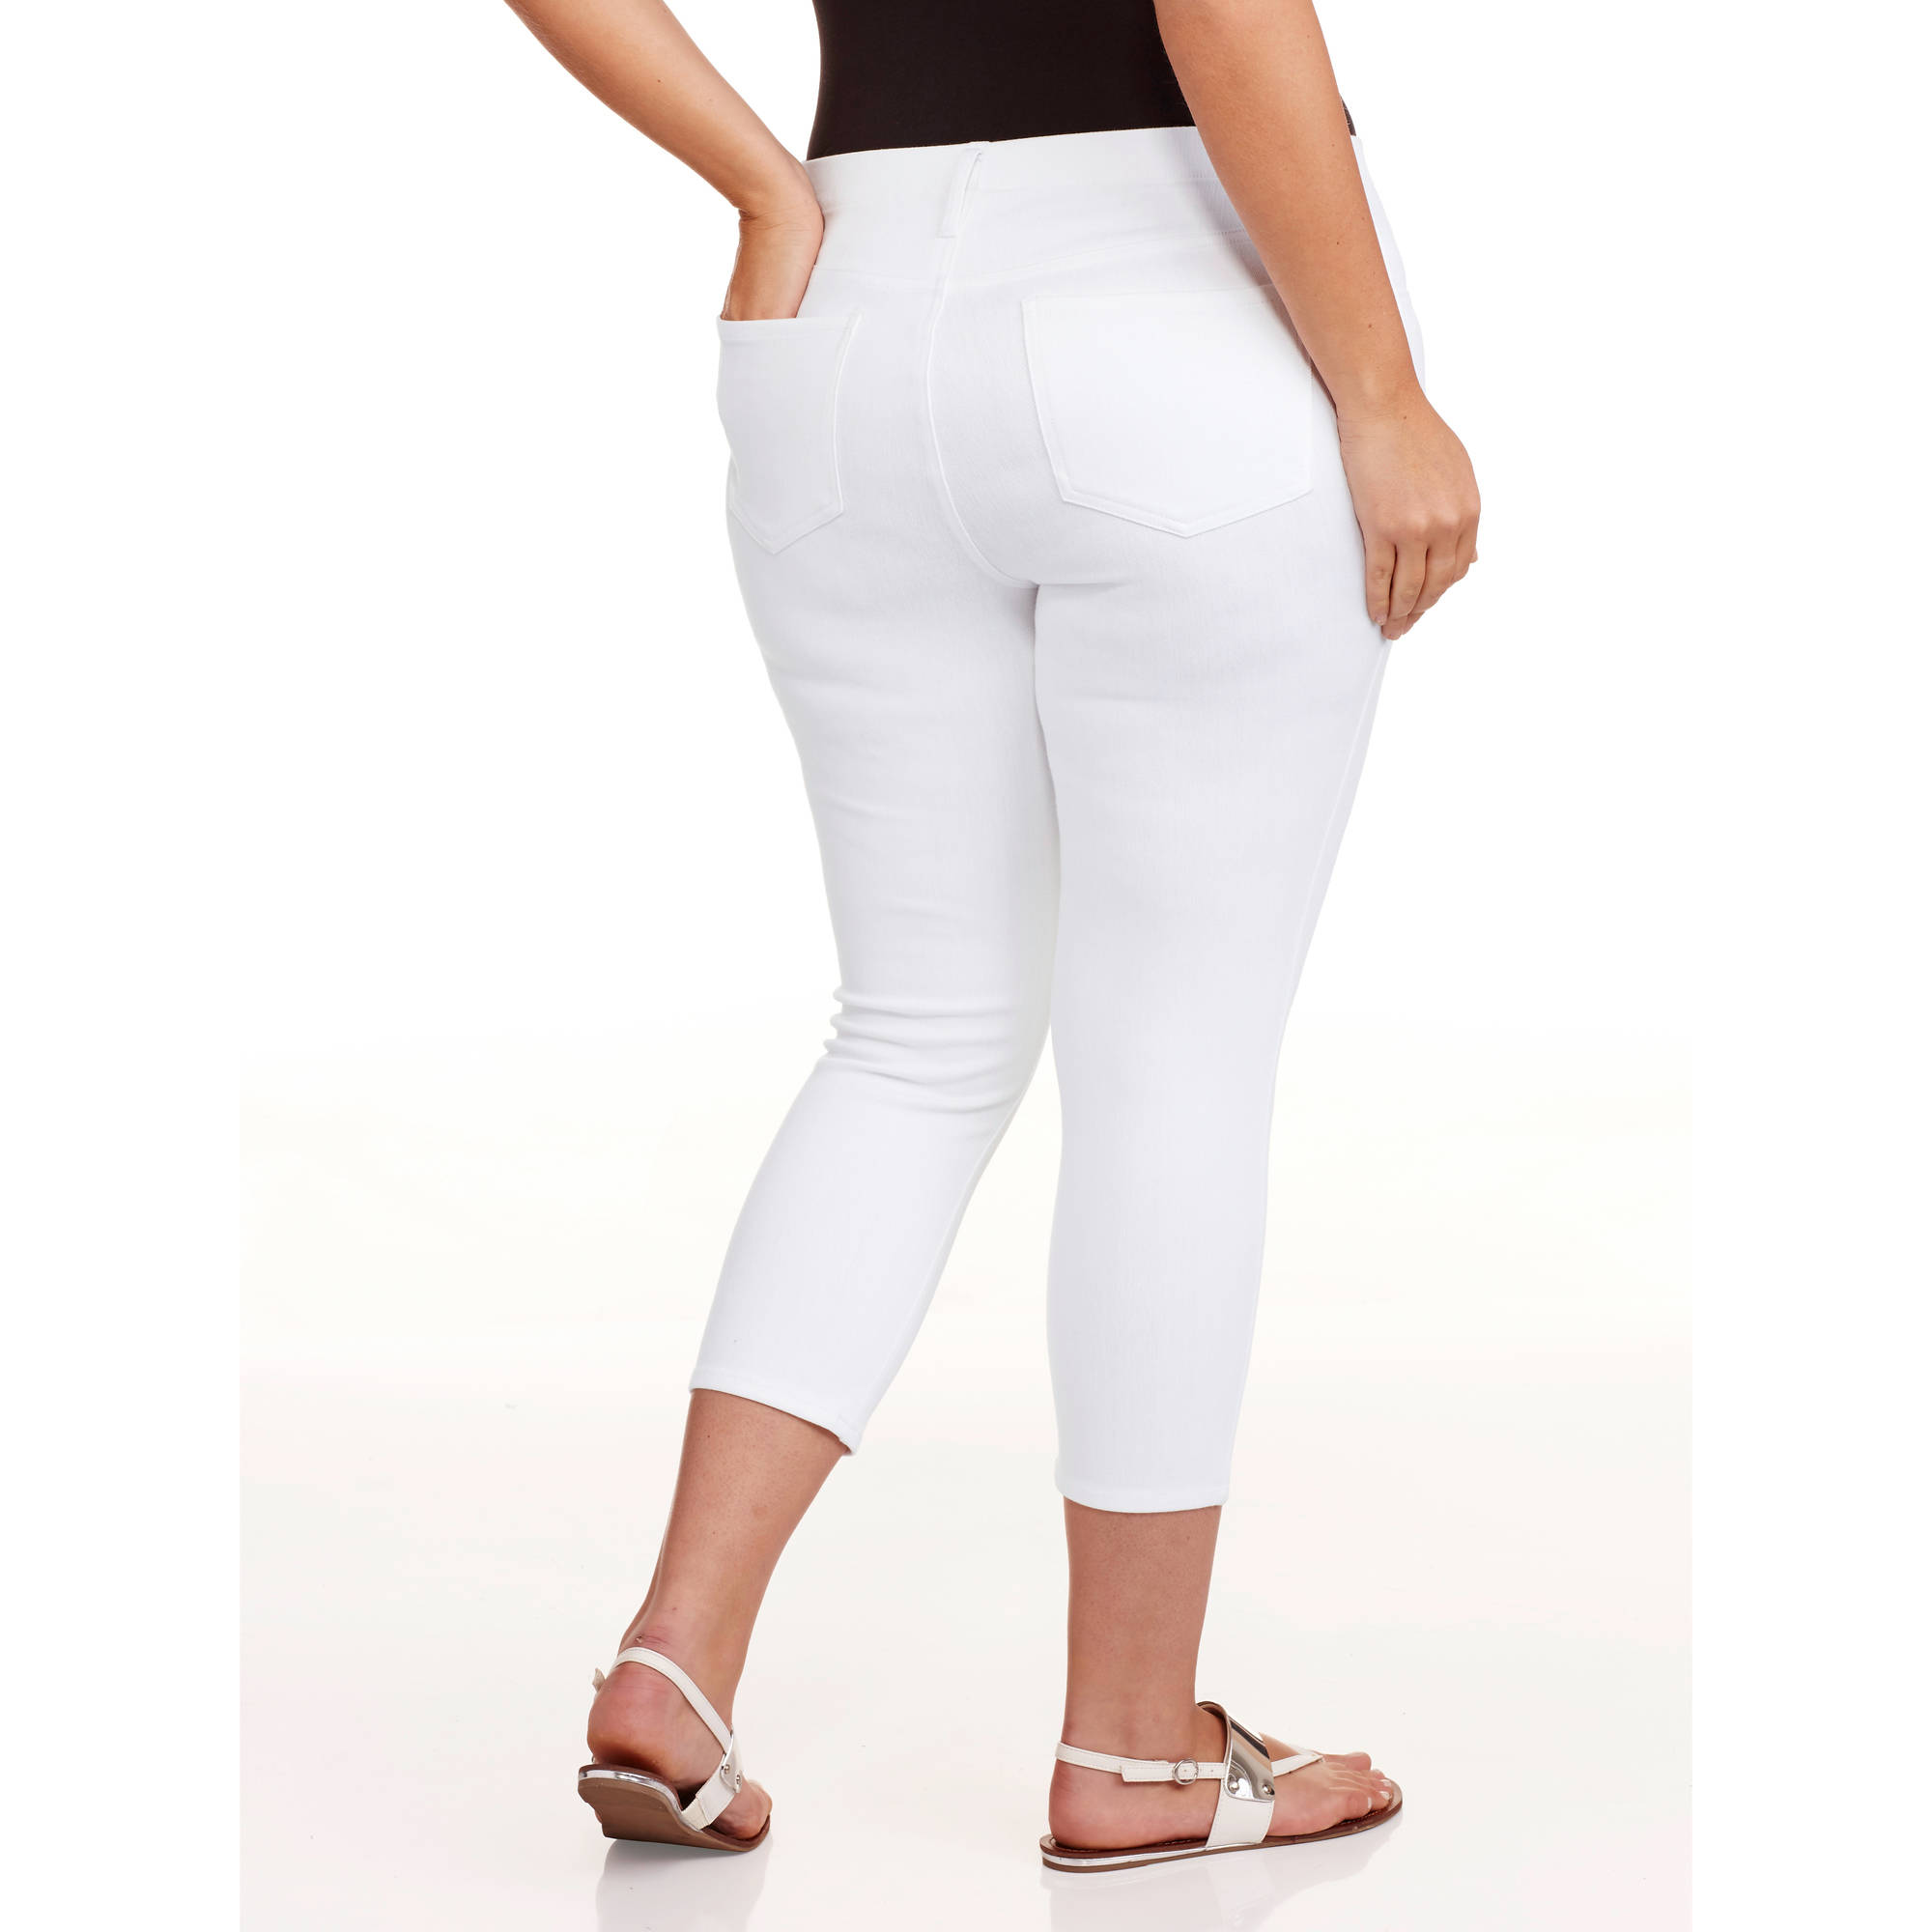 a6fb35bc81f Faded Glory - Women s Plus-Size Capri Jeggings - Walmart.com